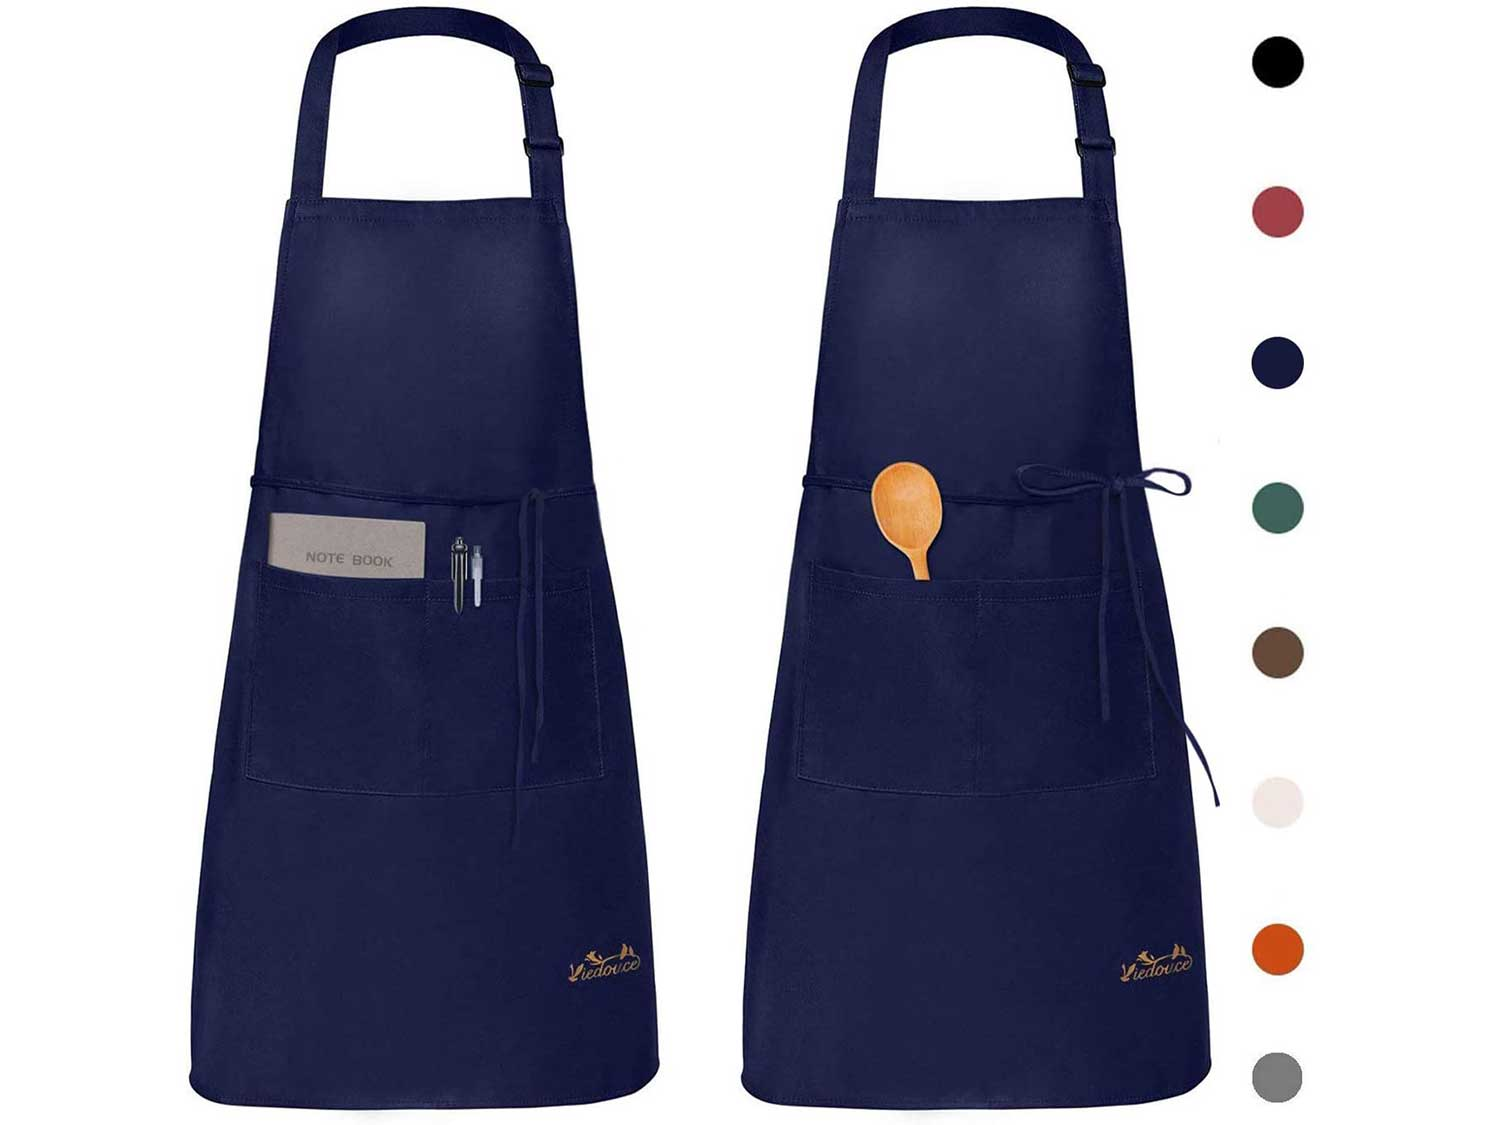 Viedouce Womens Mens Aprons with Pockets Durable Restaurant Aprons for Chefs Pocket Apron 2 Pack, Navy